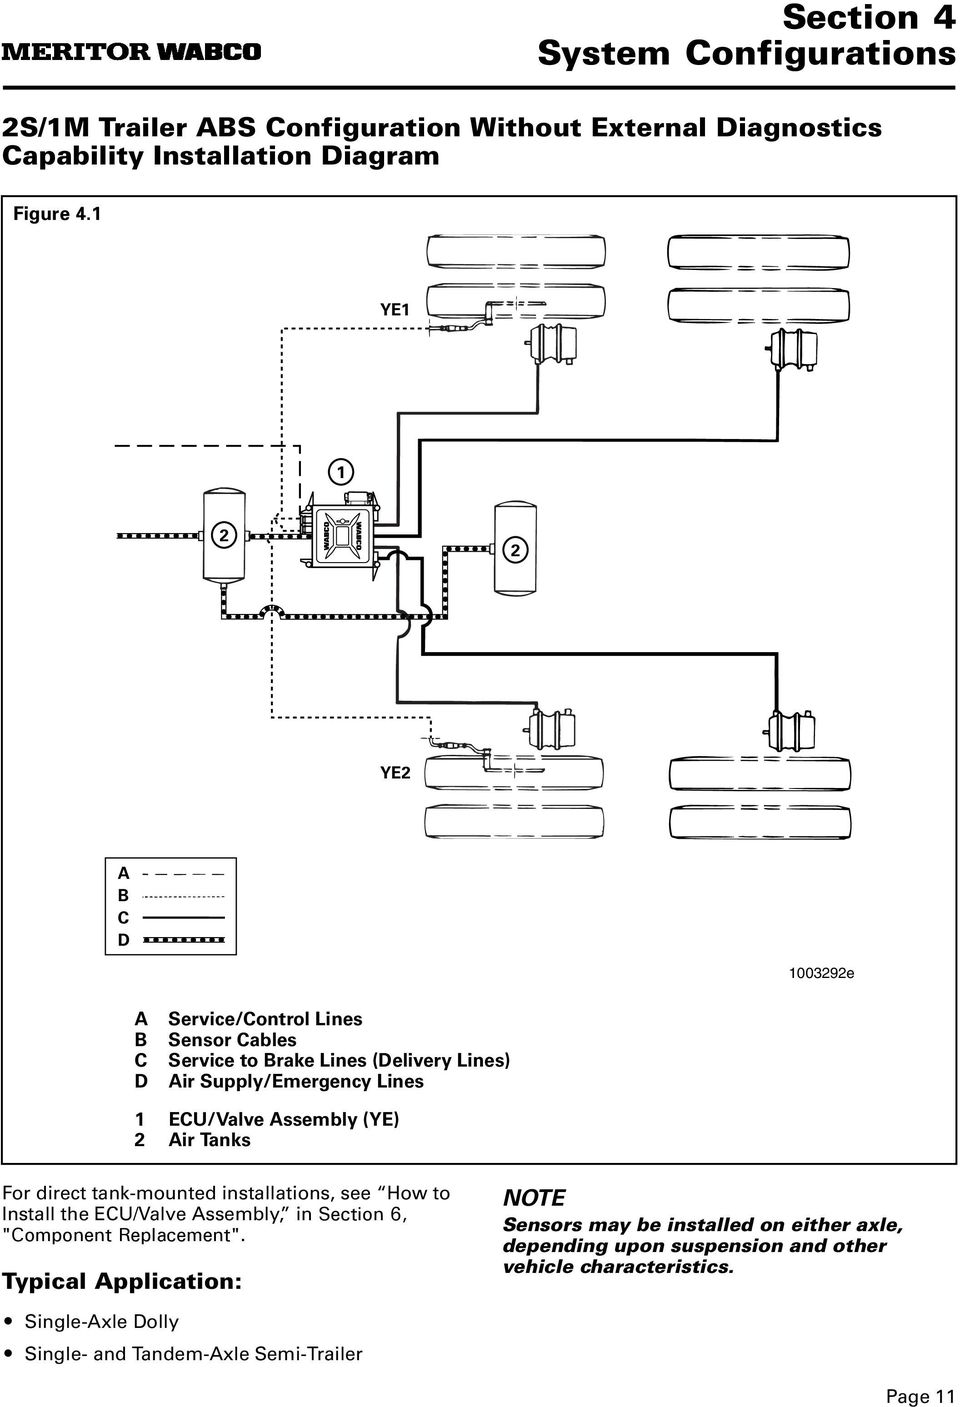 Wabco Wiring Diagrams - tuli.kuiyt.seblock.deDiagram Source